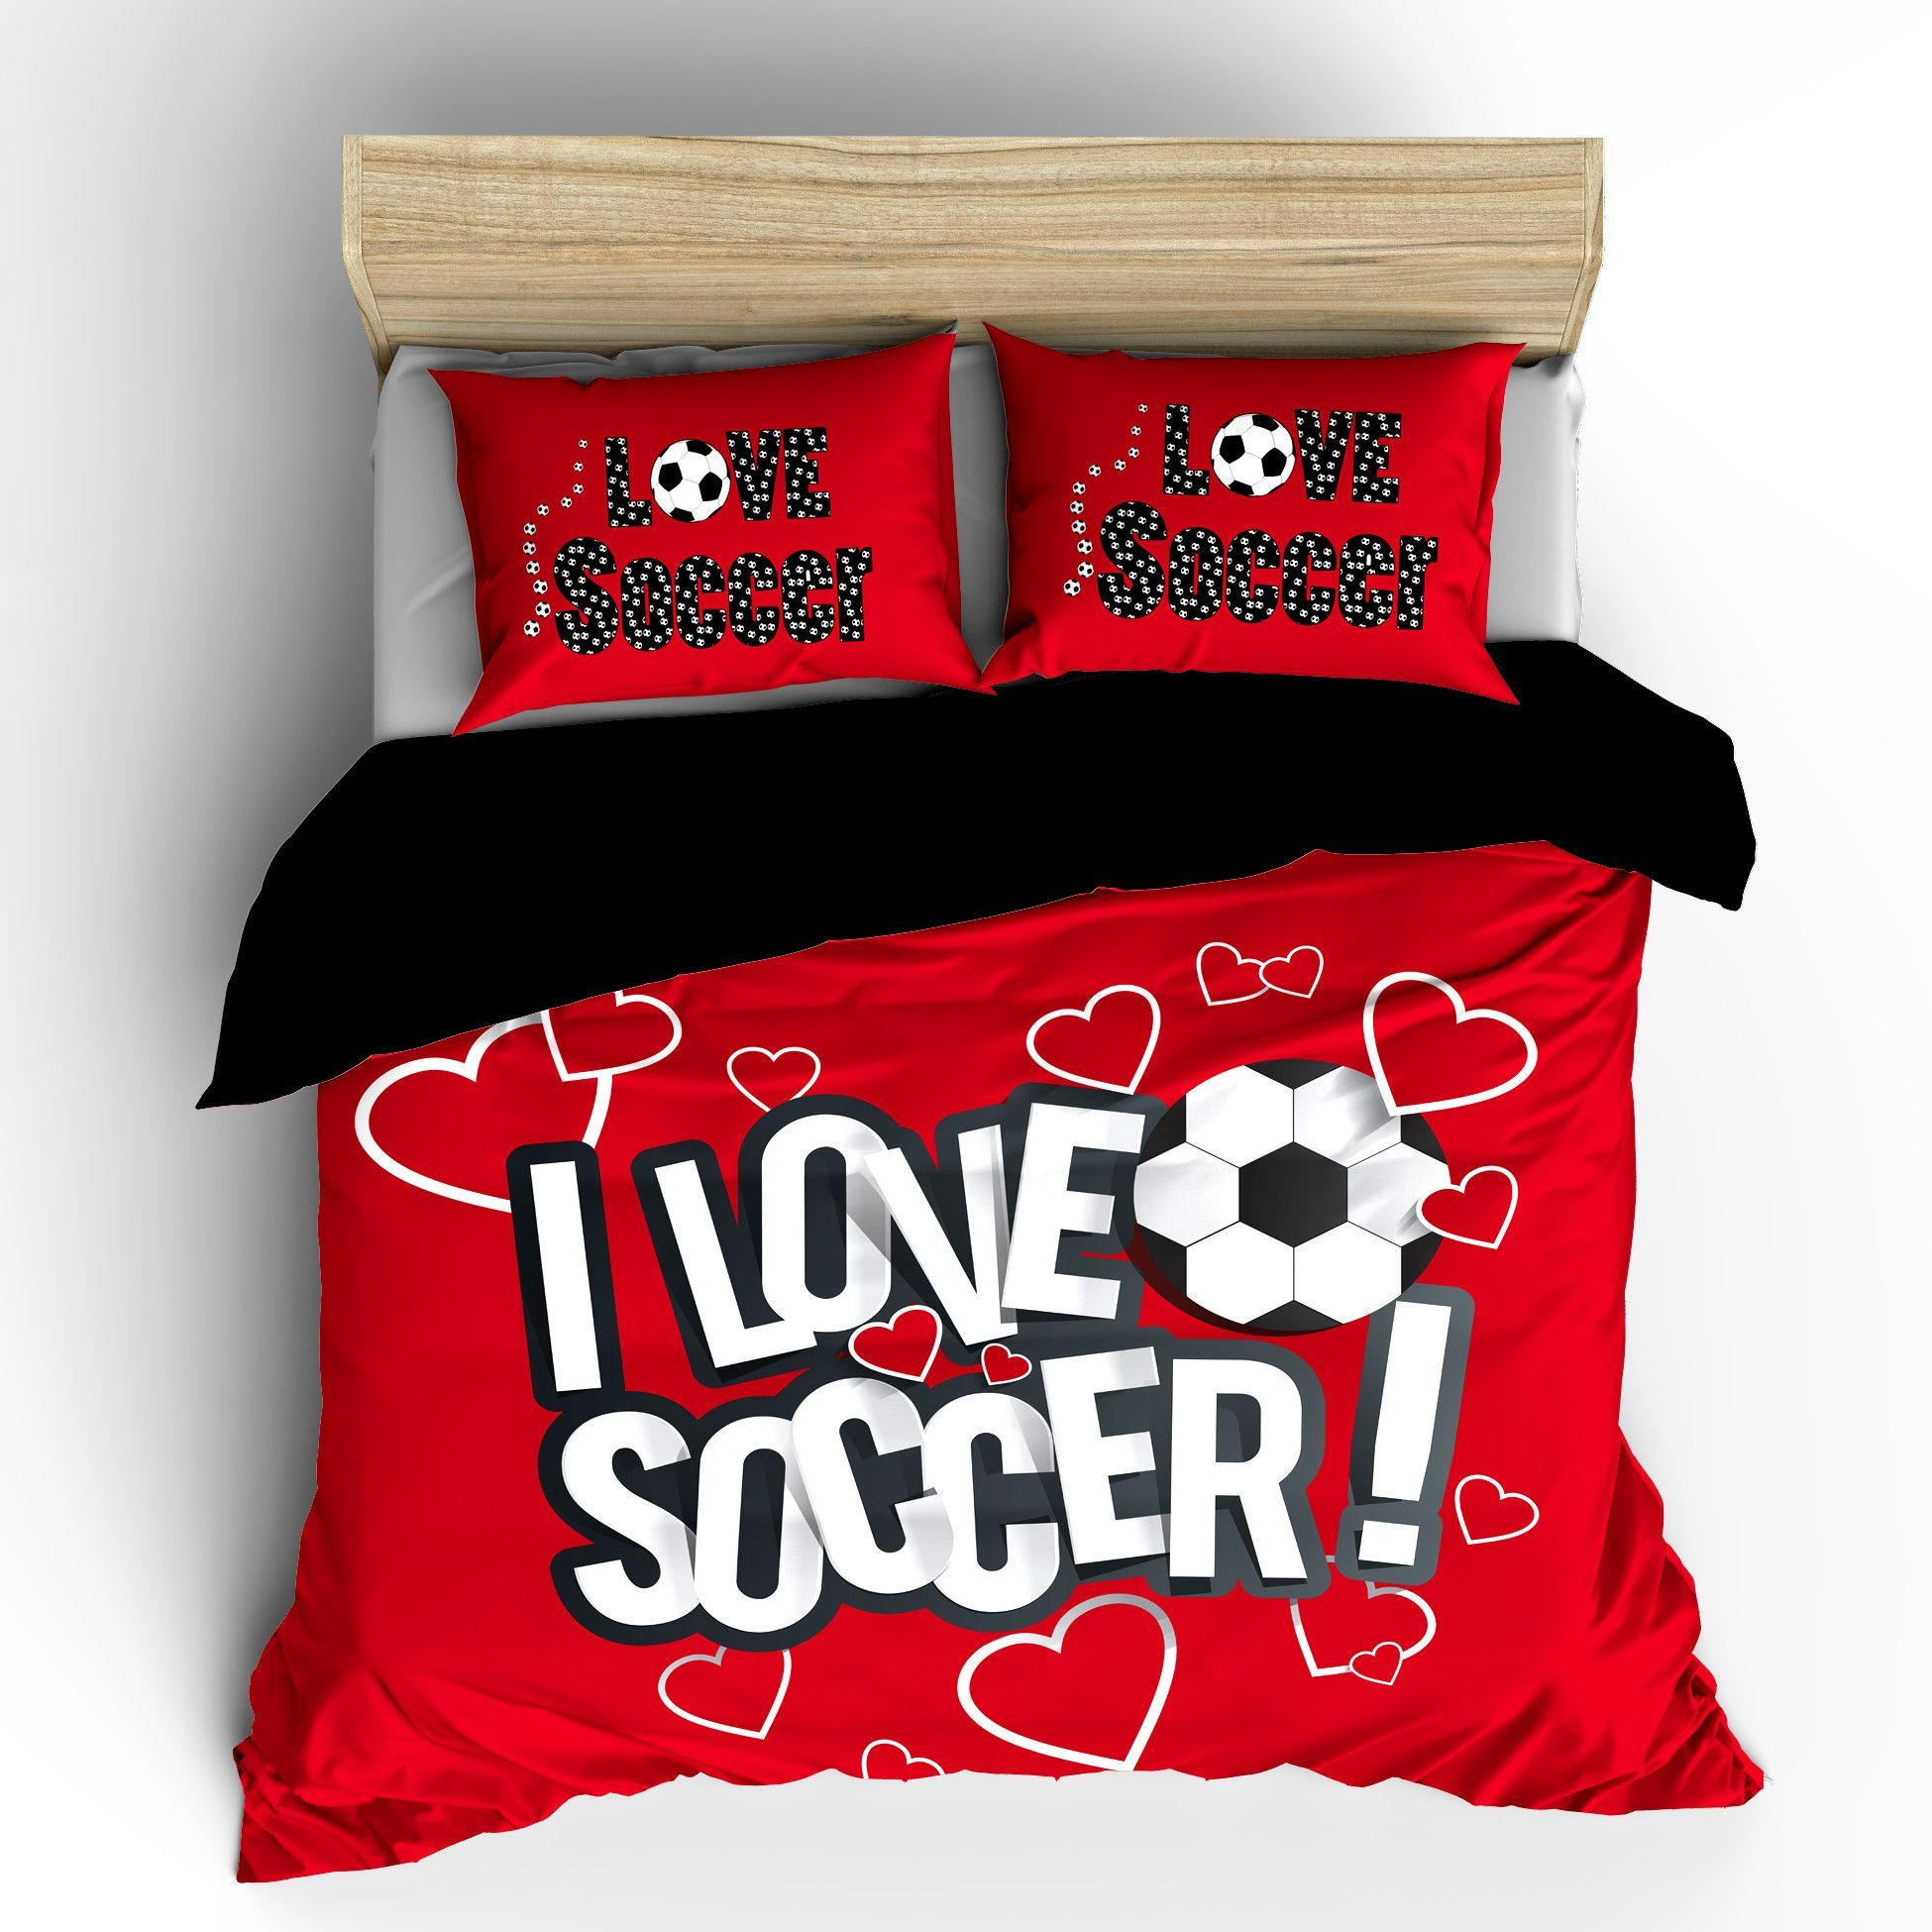 pin set sets products factory soccer dream and bed bedding